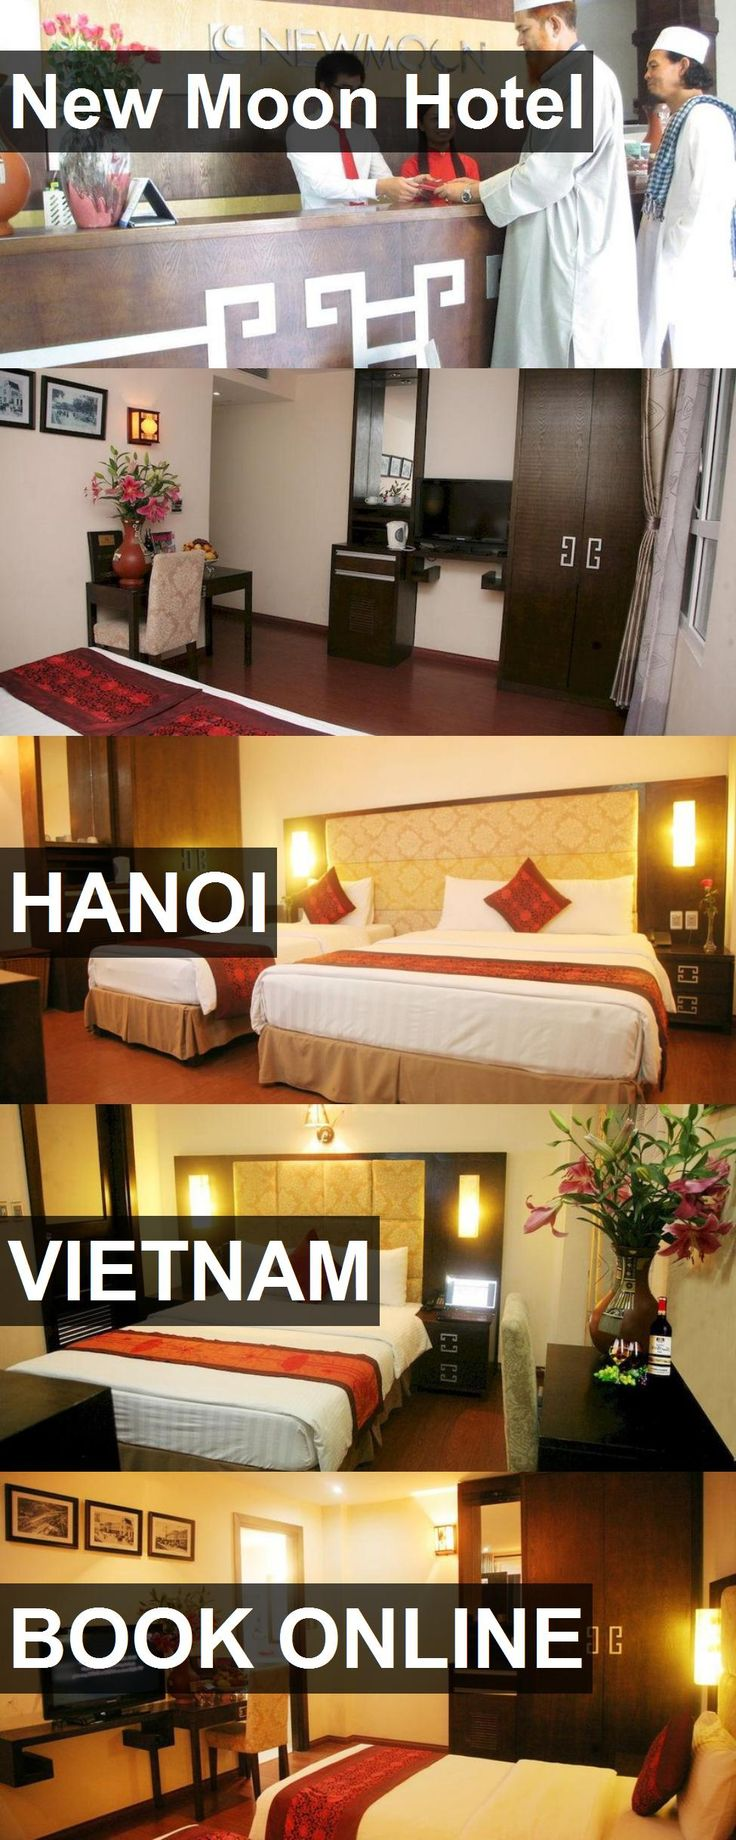 New Moon Hotel in Hanoi, Vietnam. For more information, photos, reviews and best prices please follow the link. #Vietnam #Hanoi #travel #vacation #hotel